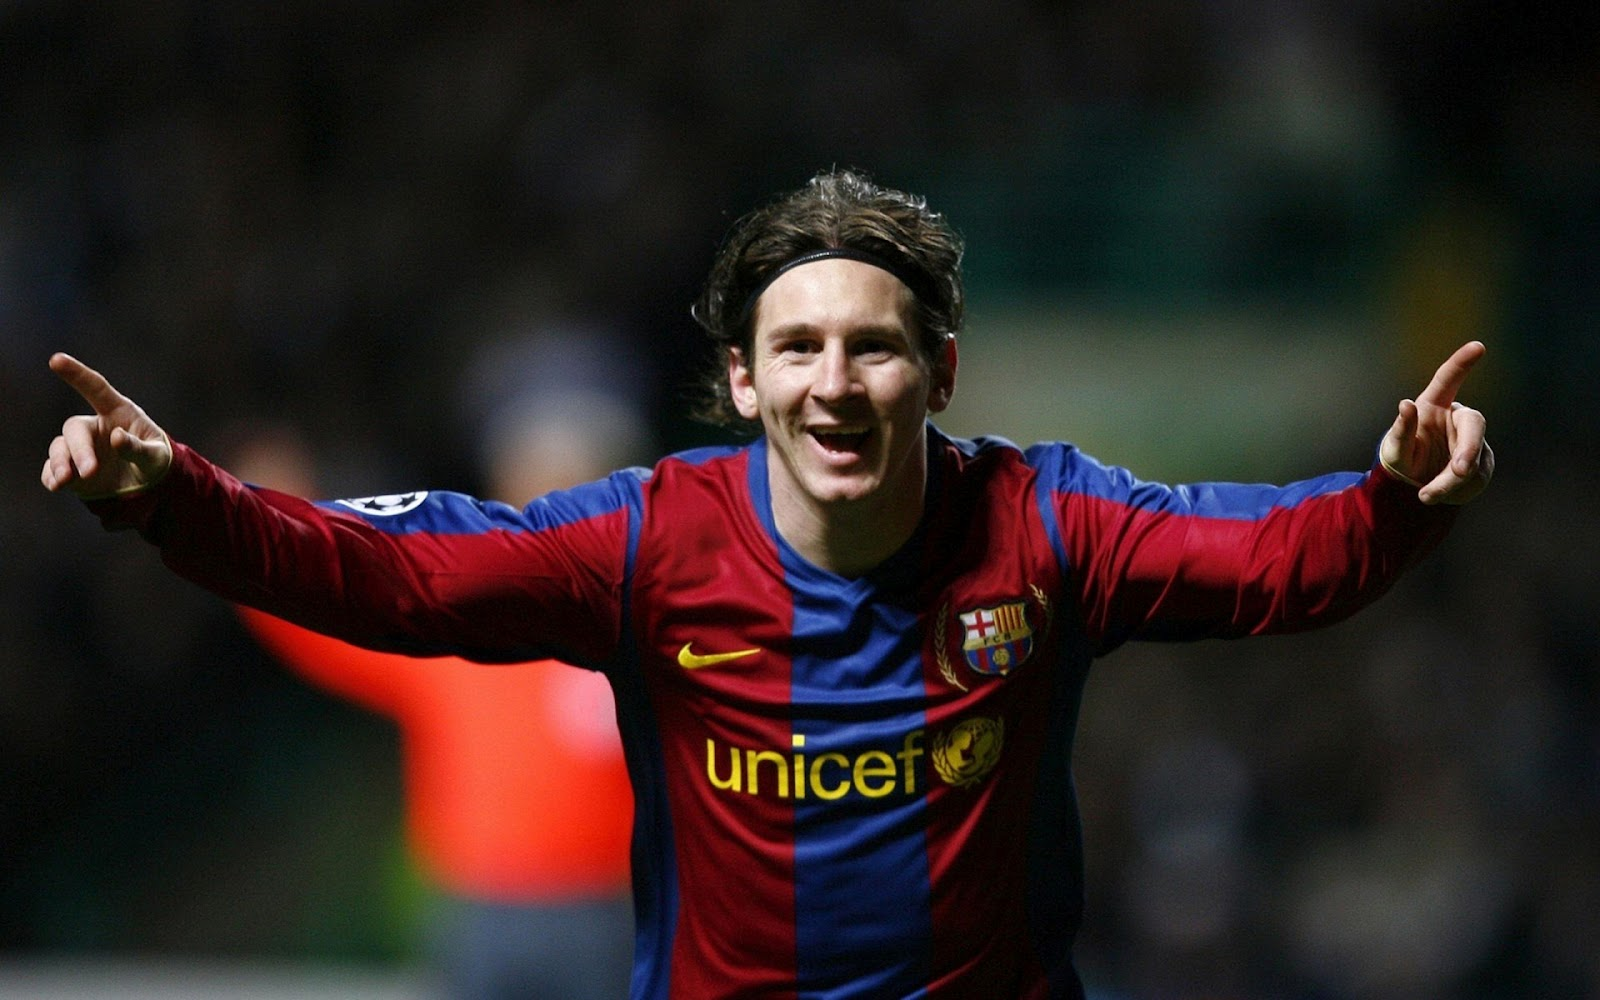 http://1.bp.blogspot.com/-lfUuGOHXO_g/T0Ckl_RNP0I/AAAAAAAAAw8/q3HibdX7Eyo/s1600/Football+Star+messi+HD+wallpaper.jpg